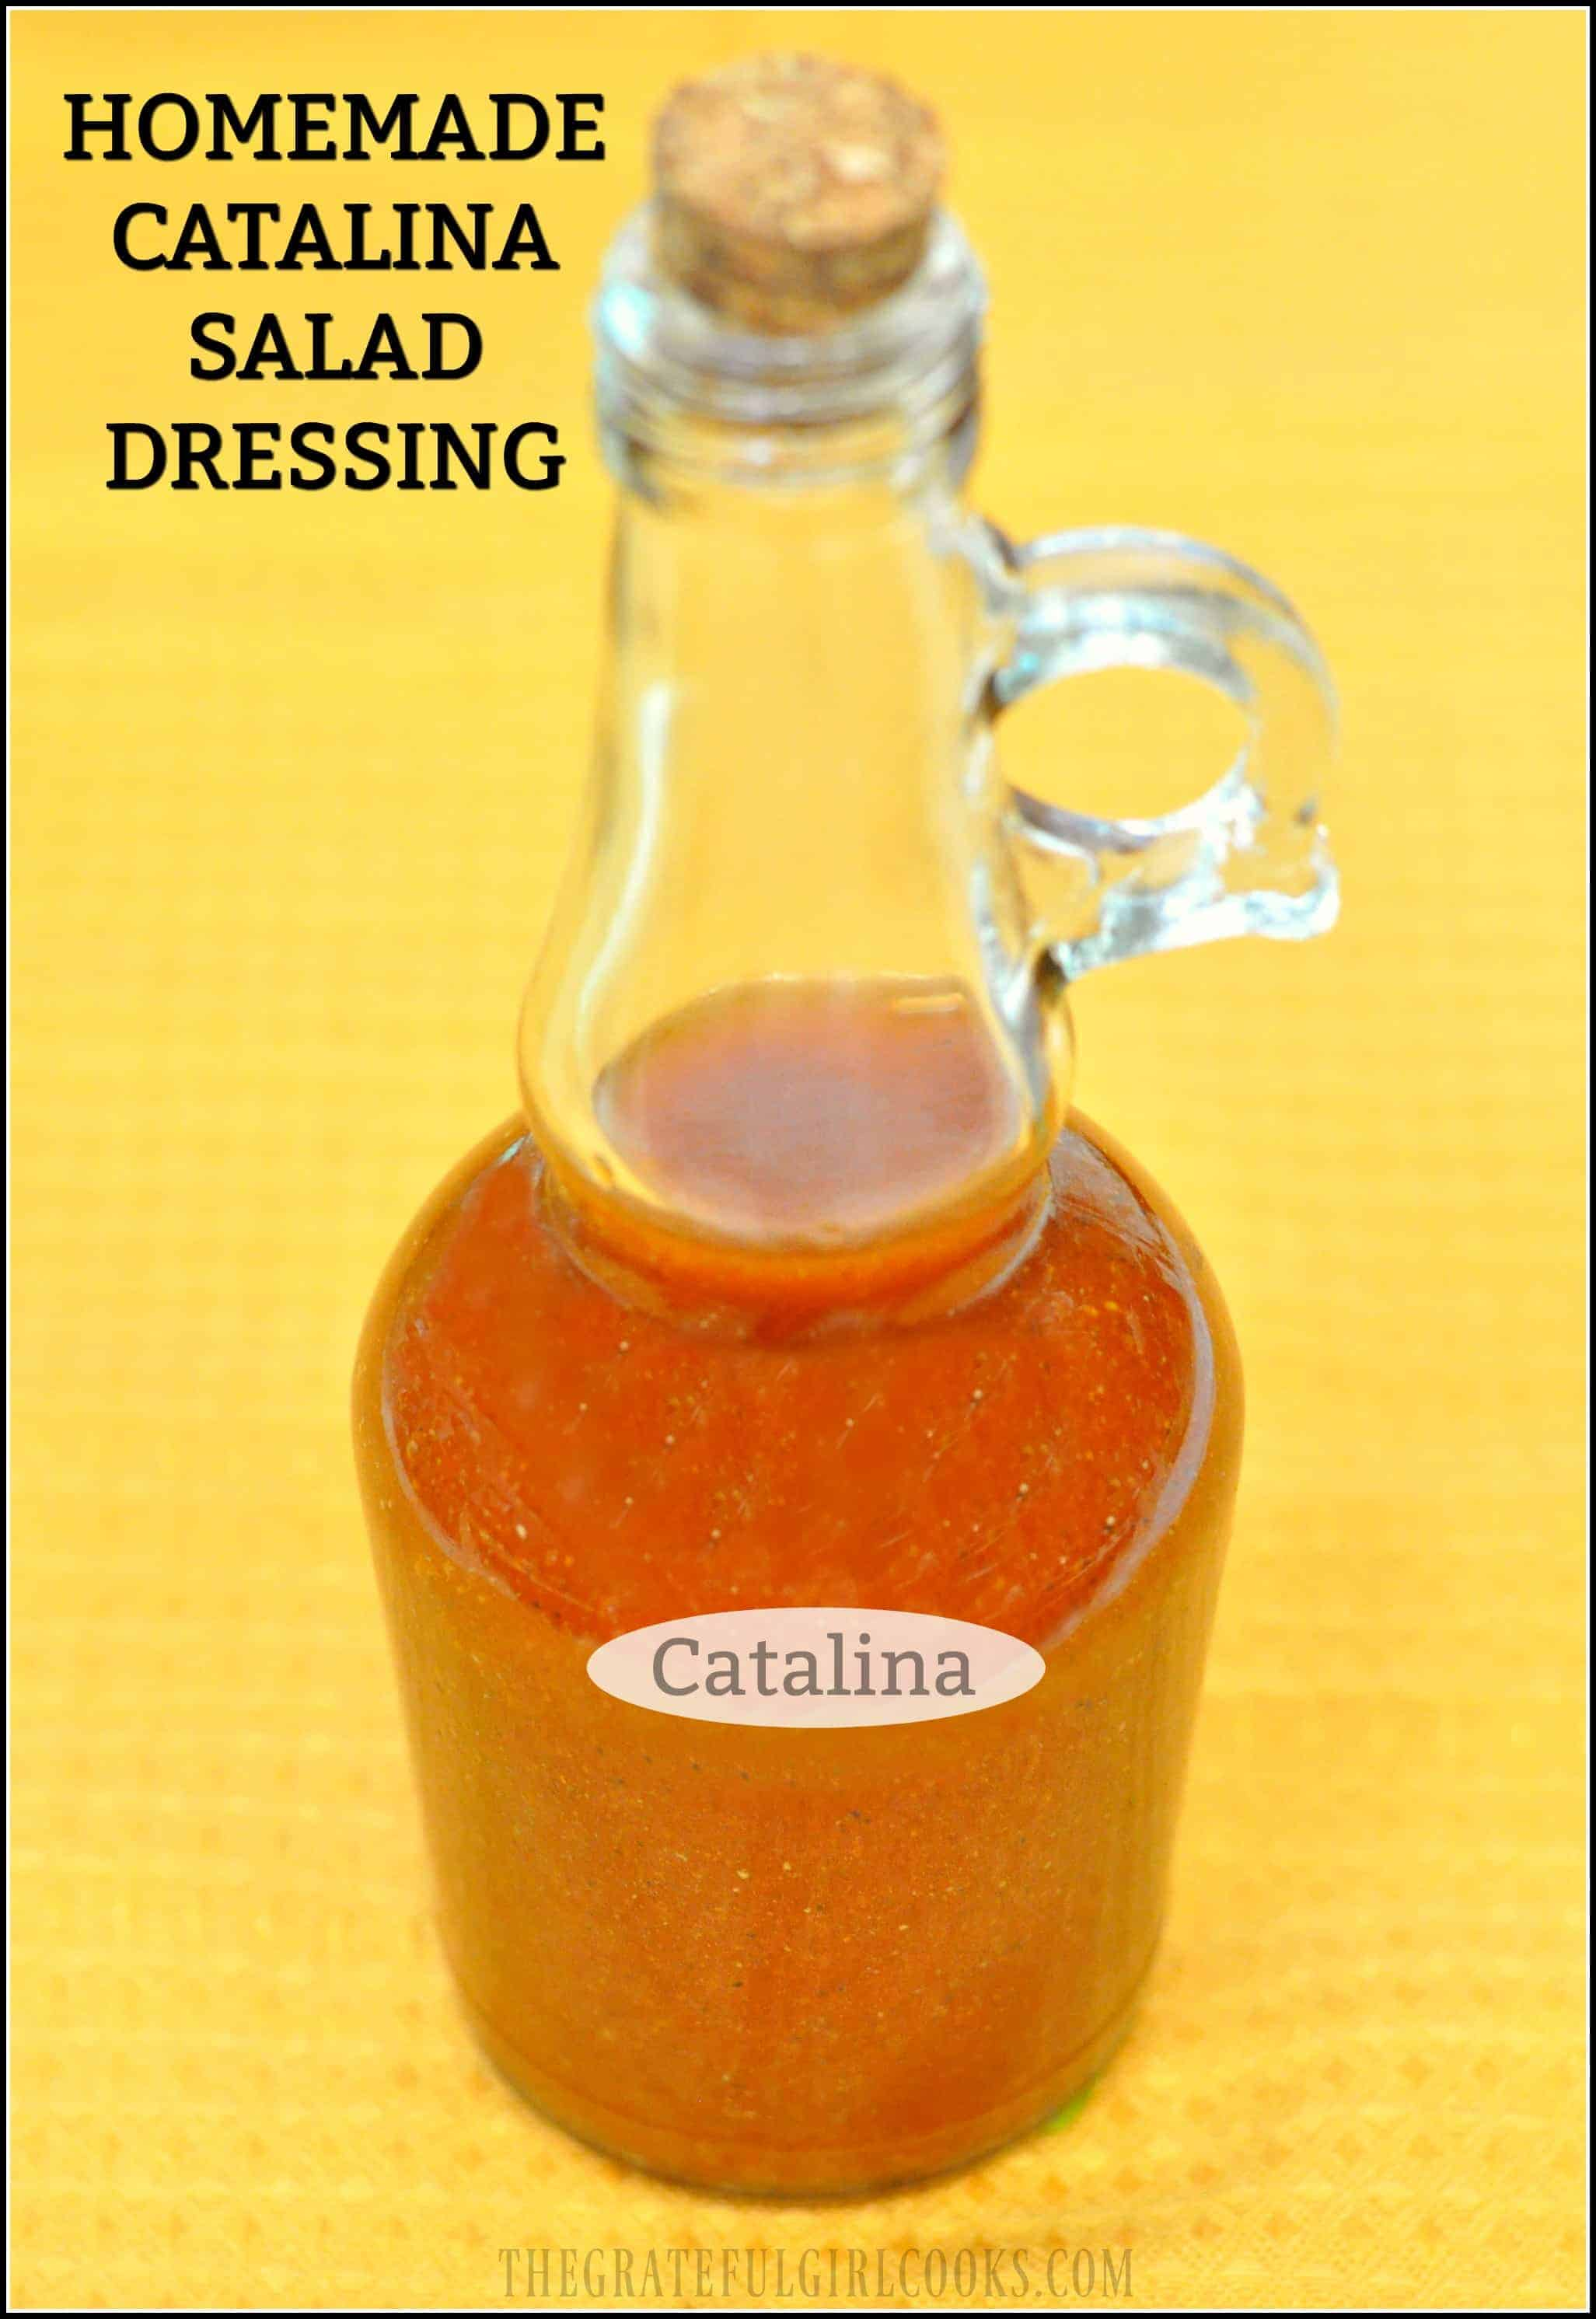 Homemade Catalina Salad Dressing | The Grateful Girl Cooks!